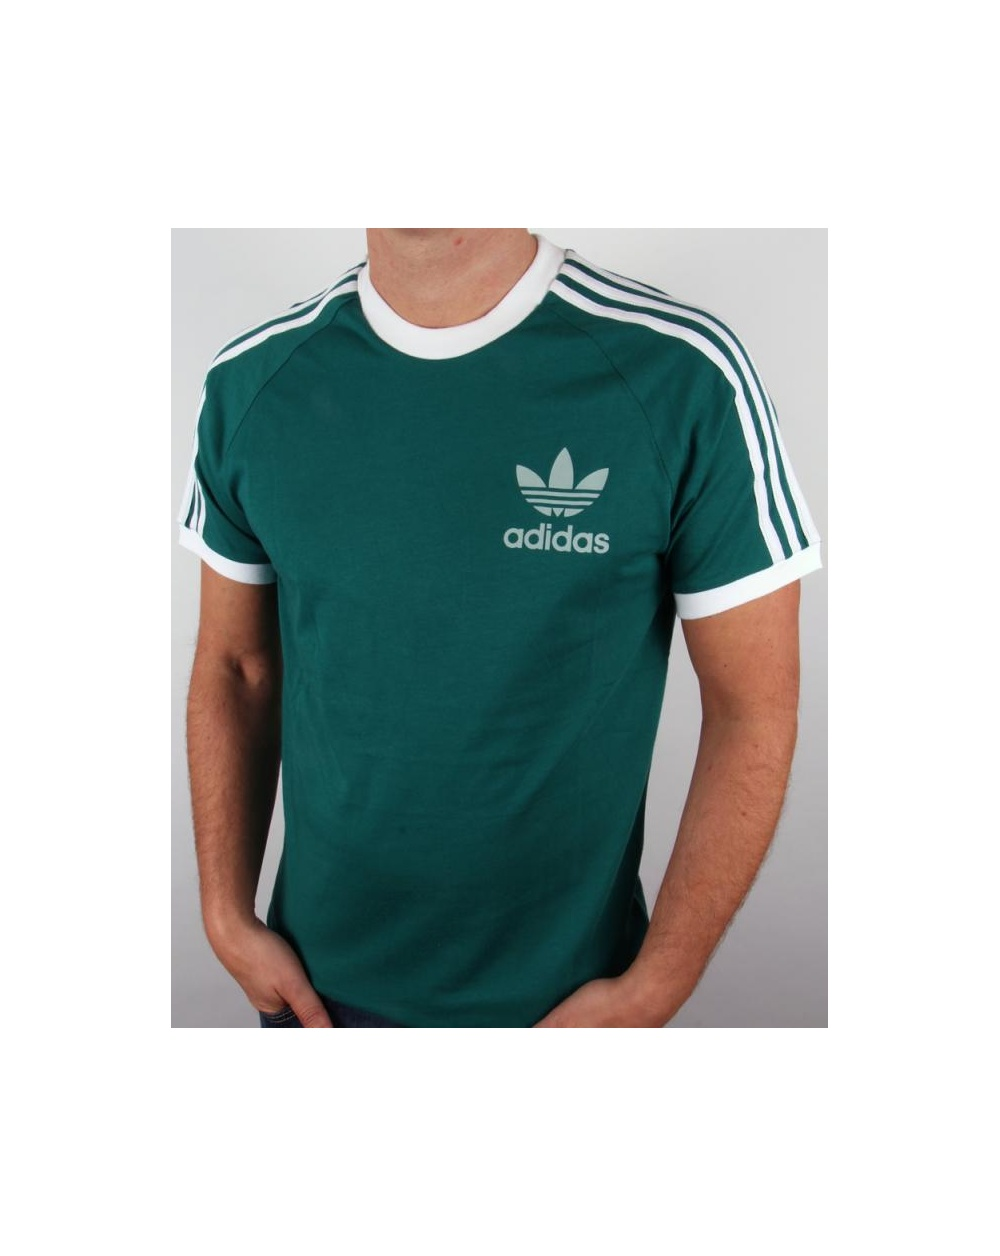 Adidas originals retro 3 stripes t shirt emerald green for Adidas lotus t shirt